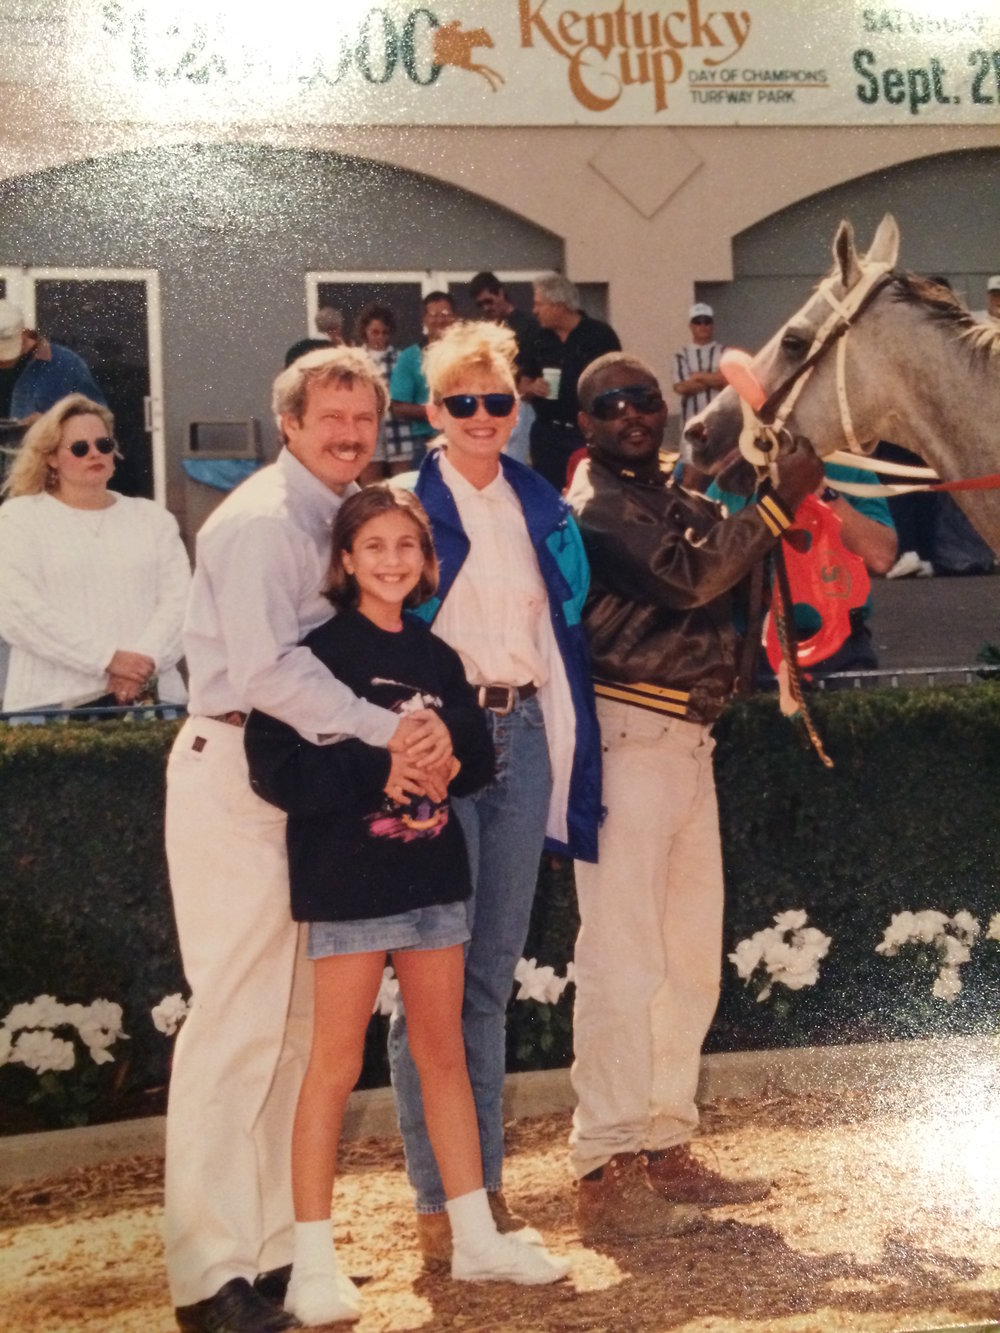 In the Turfway winner's circle with my favorite handicapper many years ago!